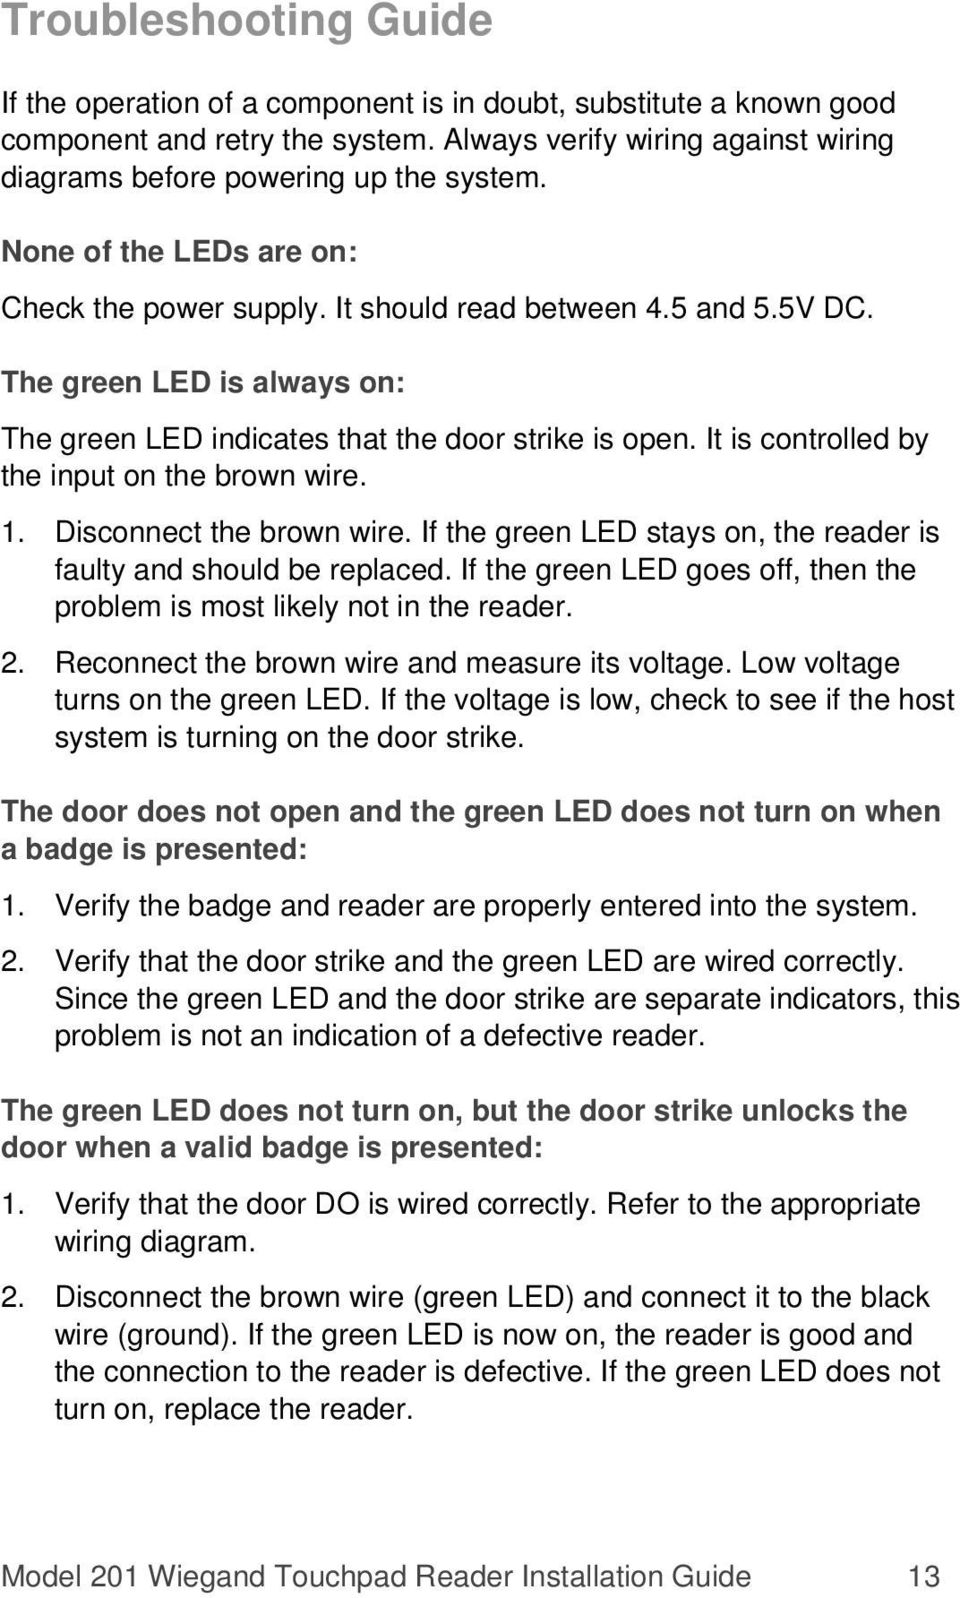 It is controlled by the input on the brown wire. 1. Disconnect the brown wire. If the green LED stays on, the reader is faulty and should be replaced.